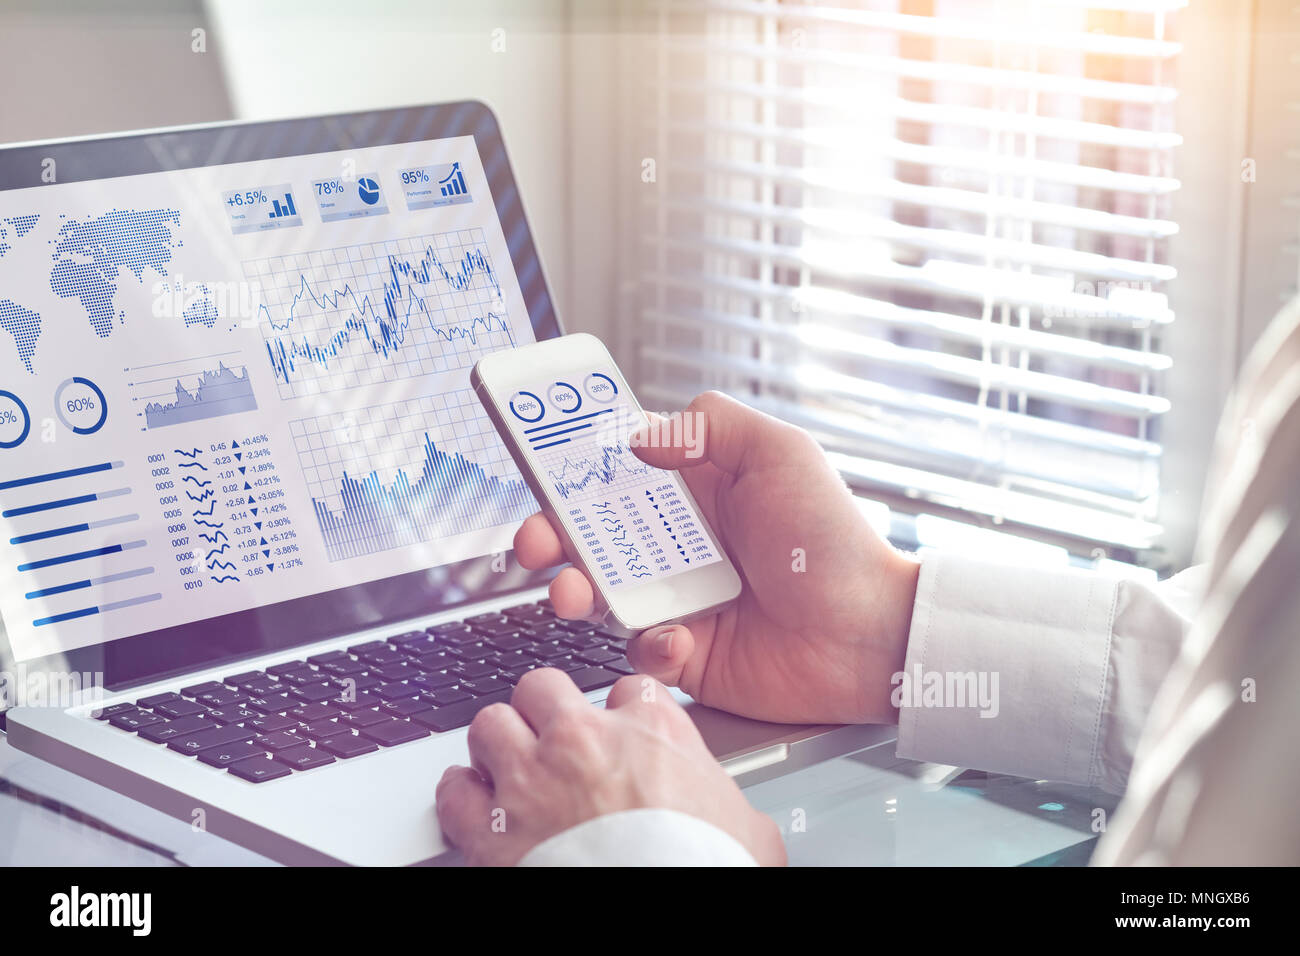 Business analytics dashboard technology on computer and smartphone screen with key performance indicator (KPI) about financial operations statistics a - Stock Image